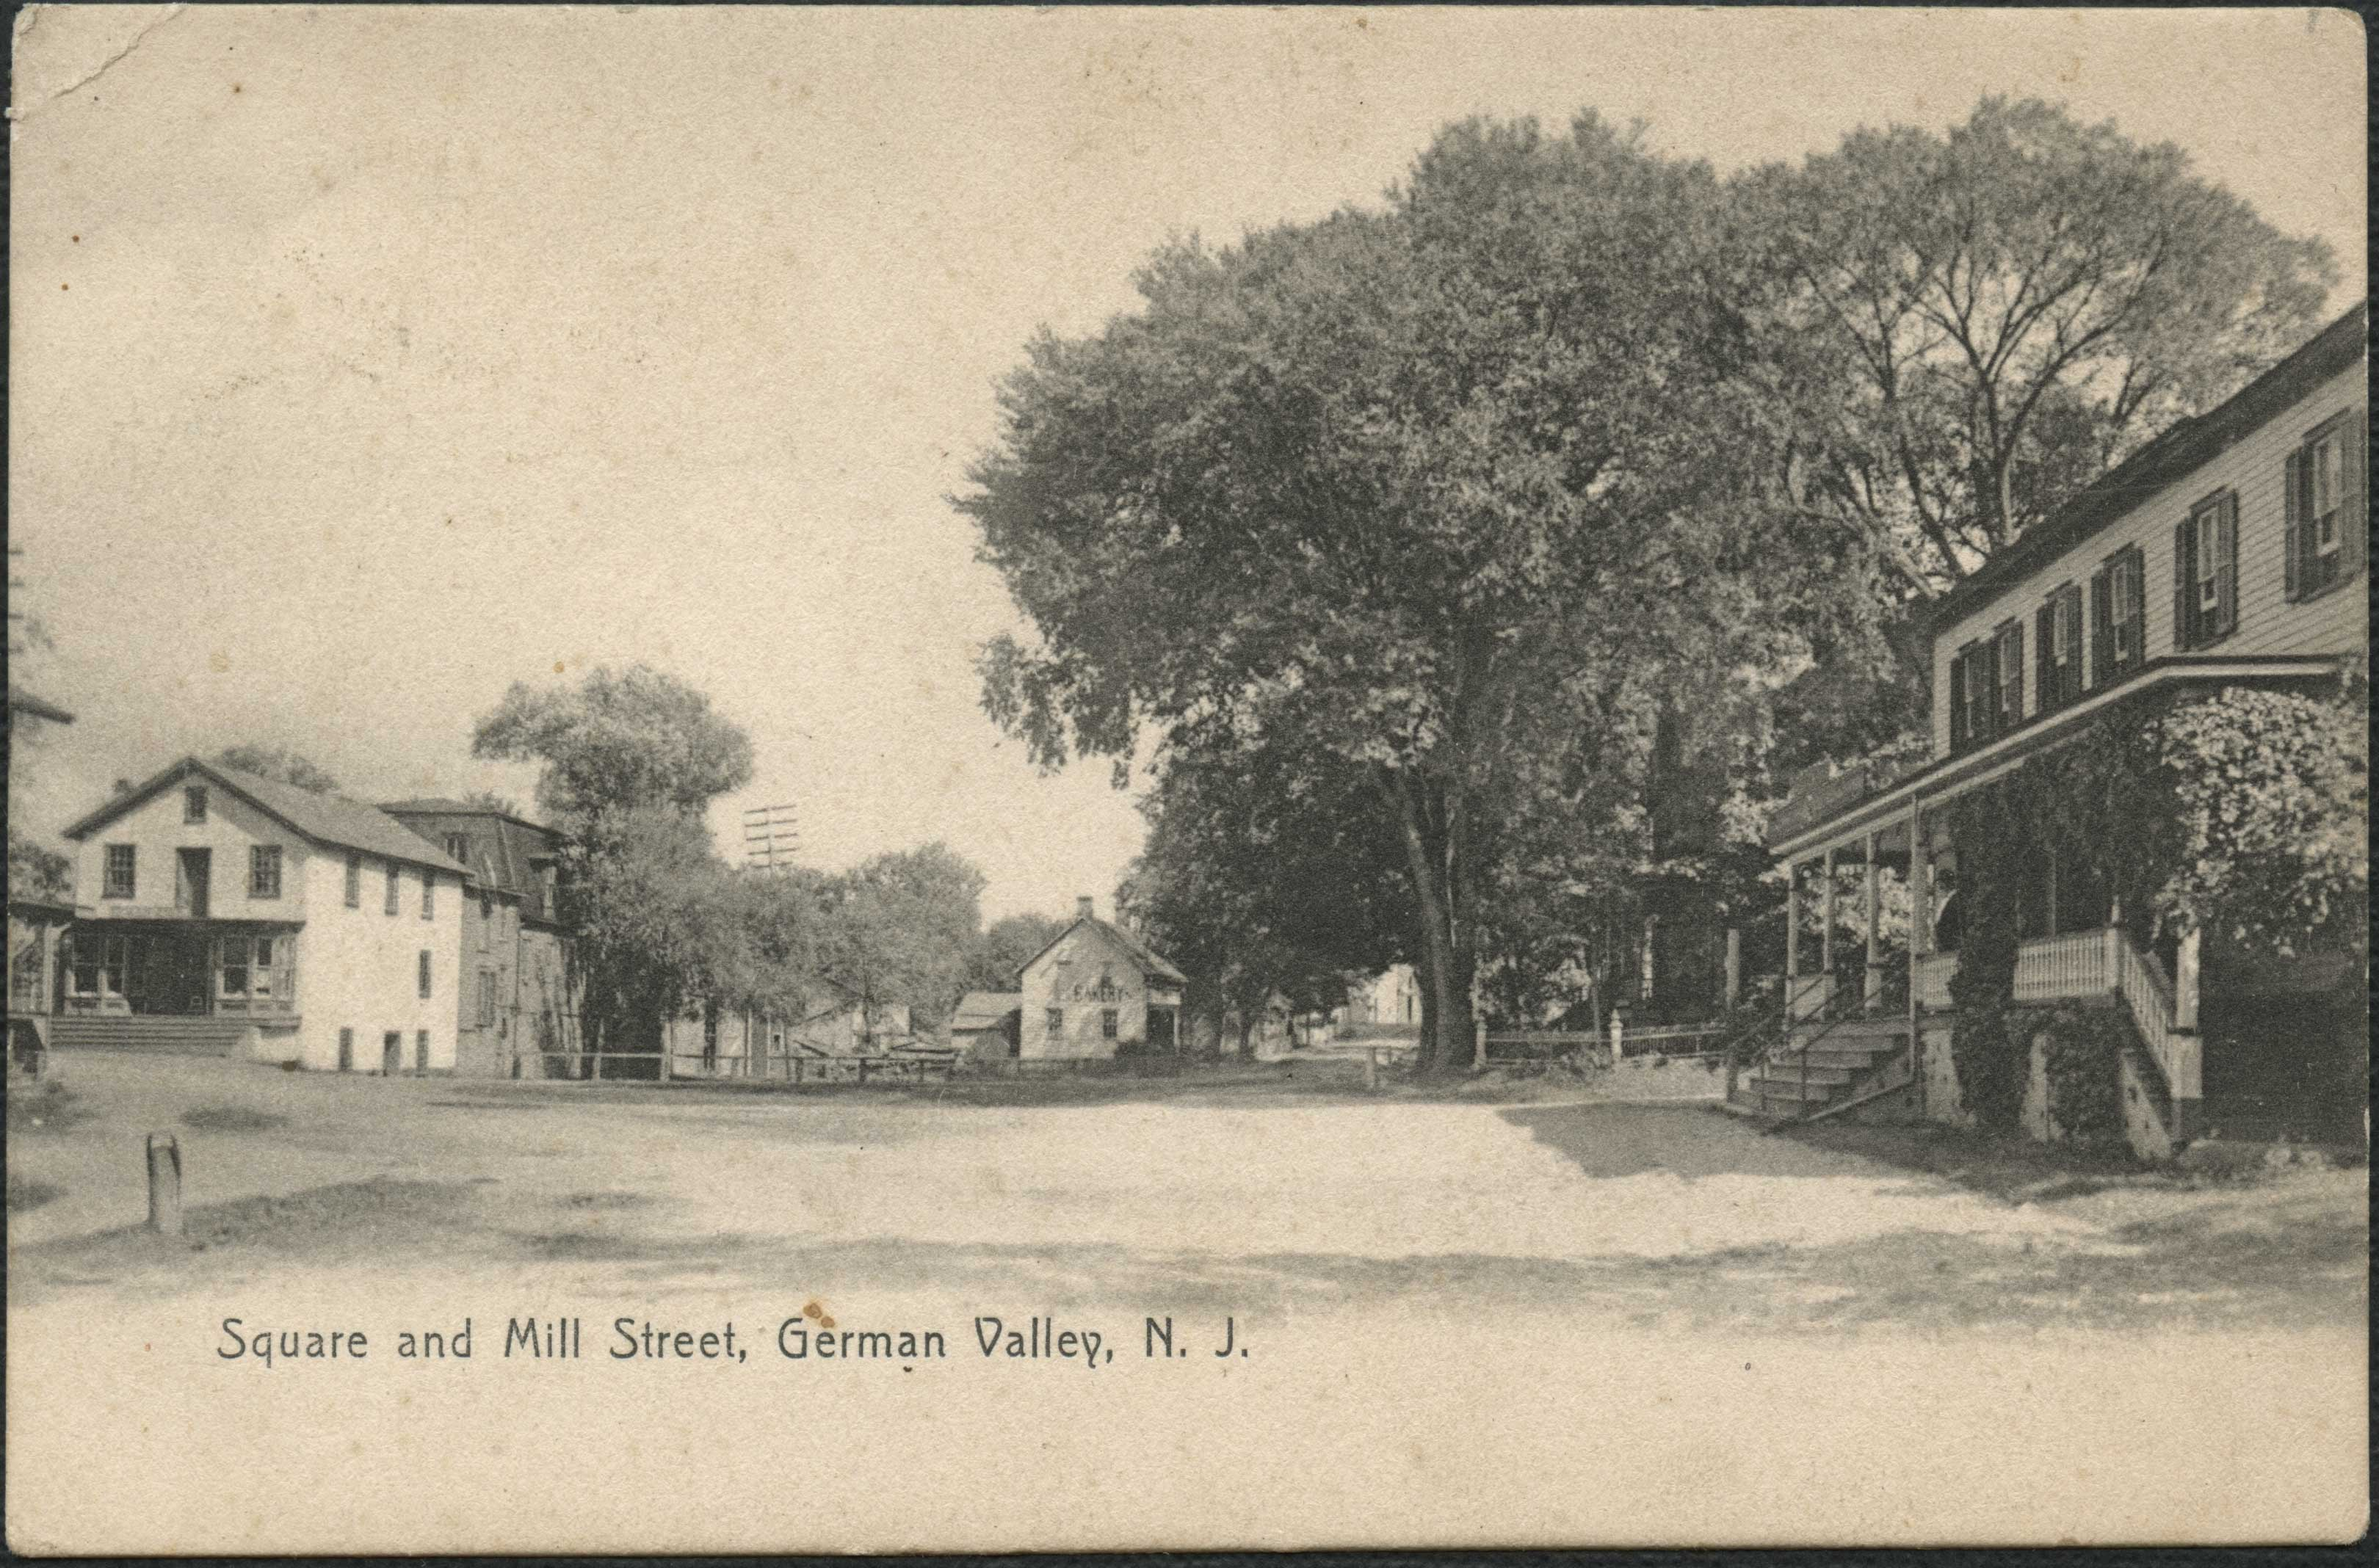 Square and Mill Street, German Valley (front)